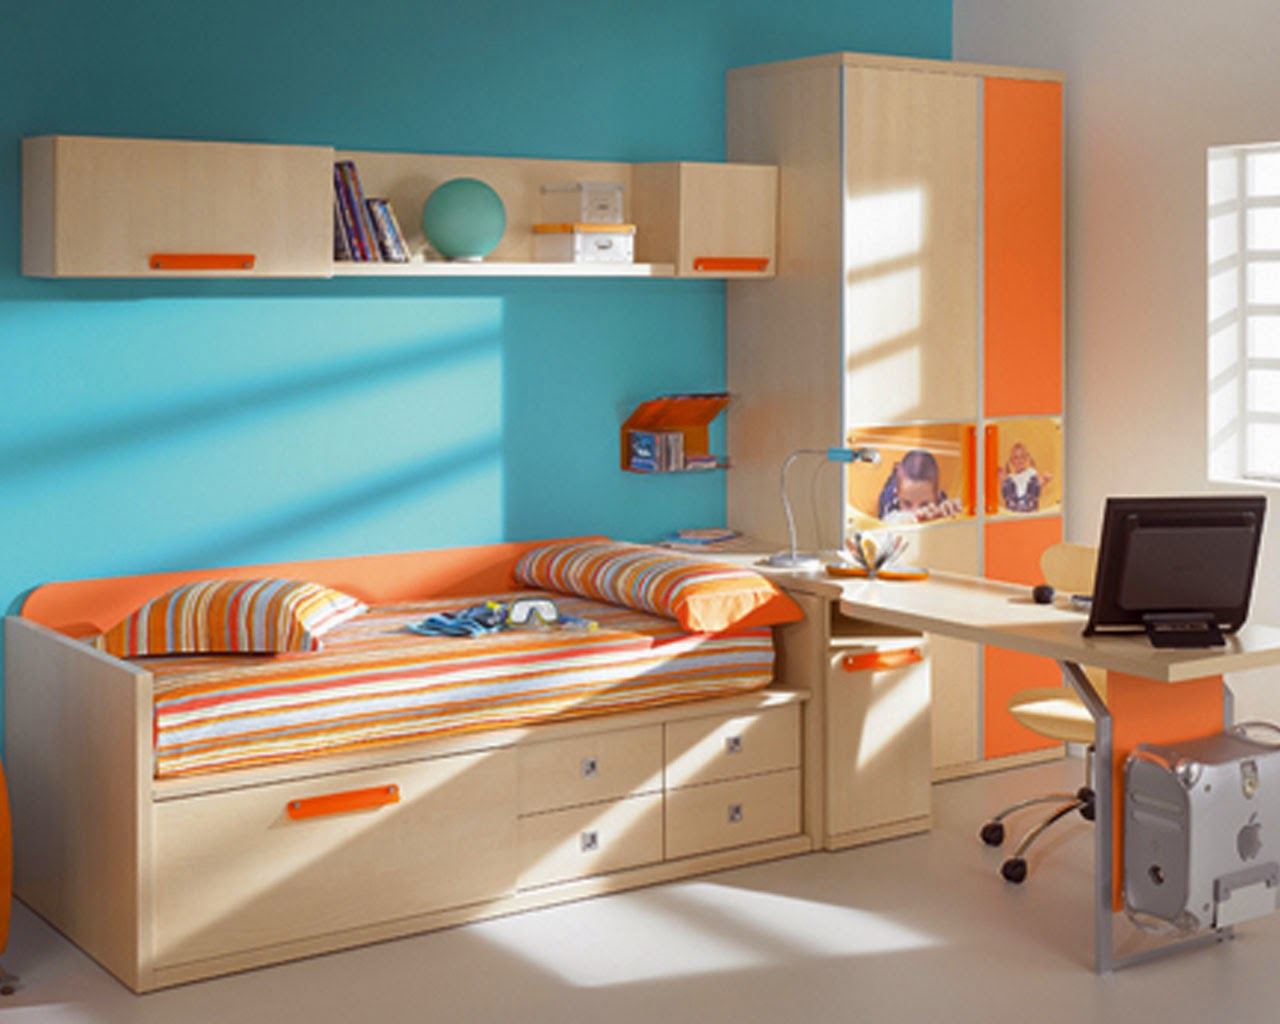 Wonderful Kids Room Design For Good Study Space Bed In Bright Brown Wood |  Orange Striped Bed Cover | Stylish Wall Mount Bookshelf On The Blue Wall